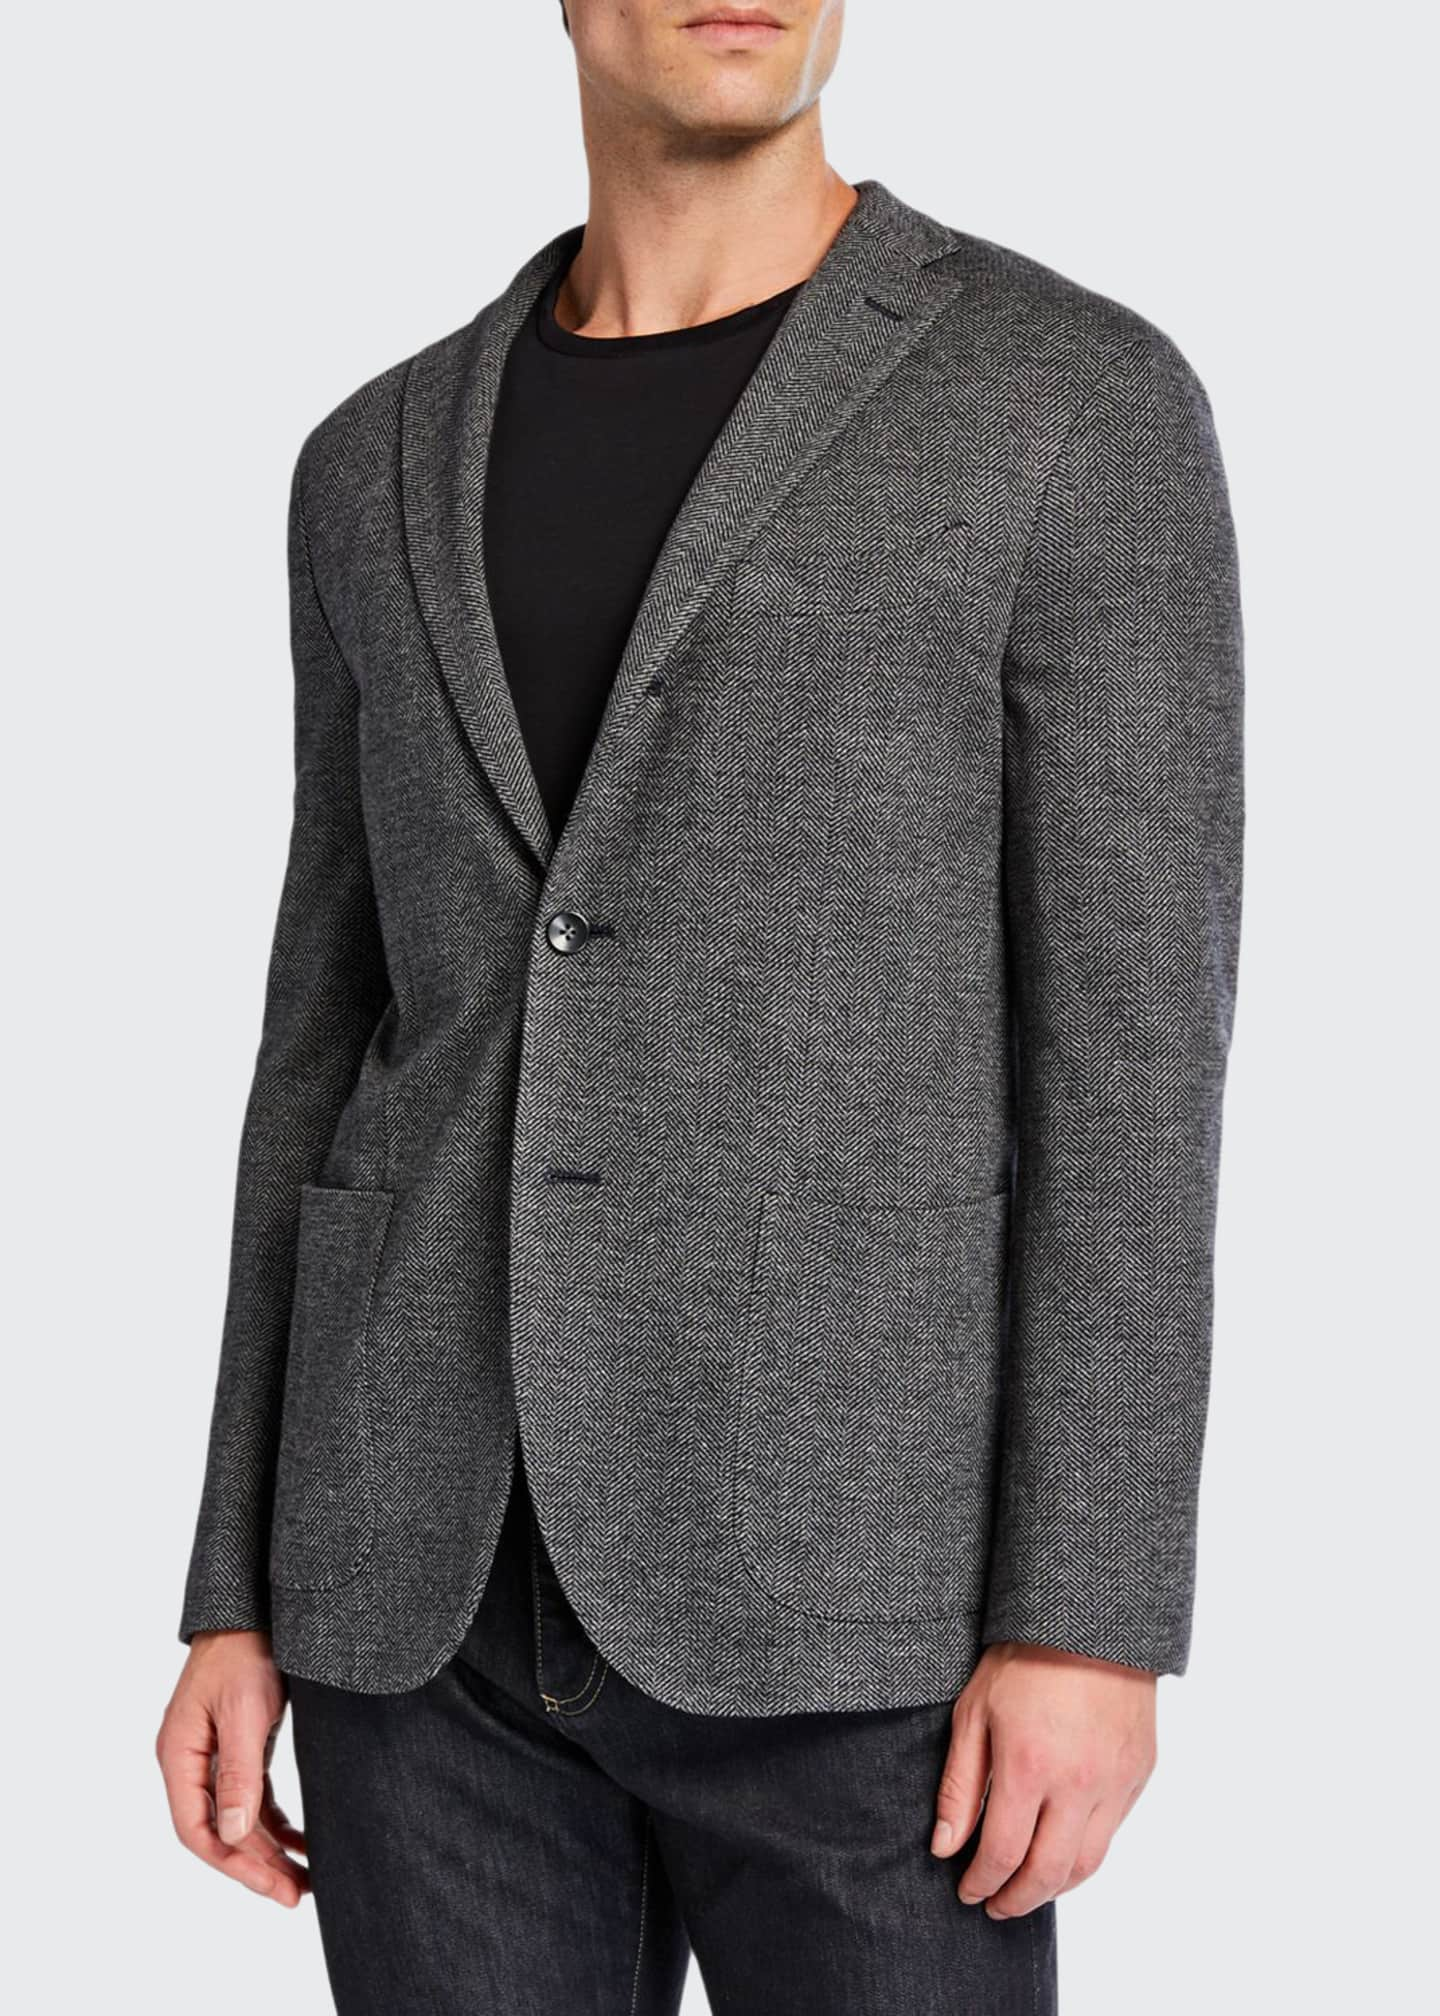 Boglioli Men's Herringbone Two-Button Jacket